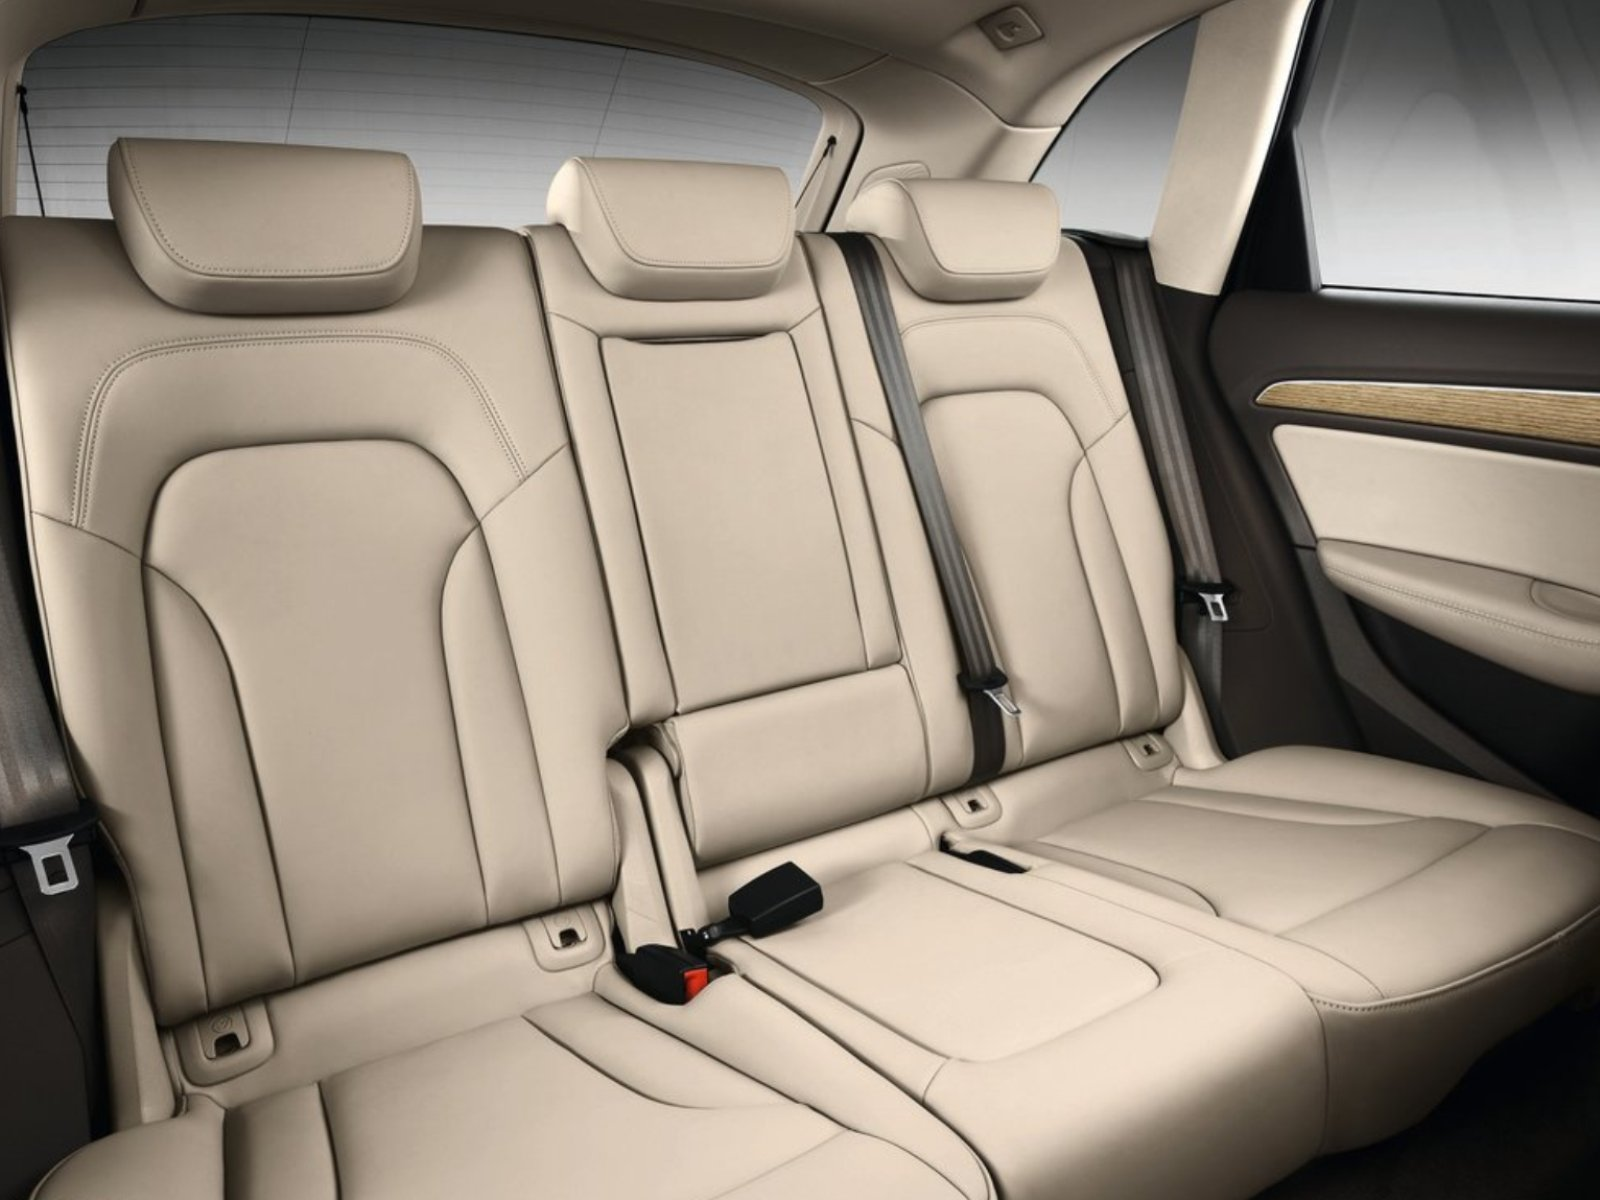 The panoramic glass roof also creates a pleasant atmosphere in the interior. The S line sport package offers a ...